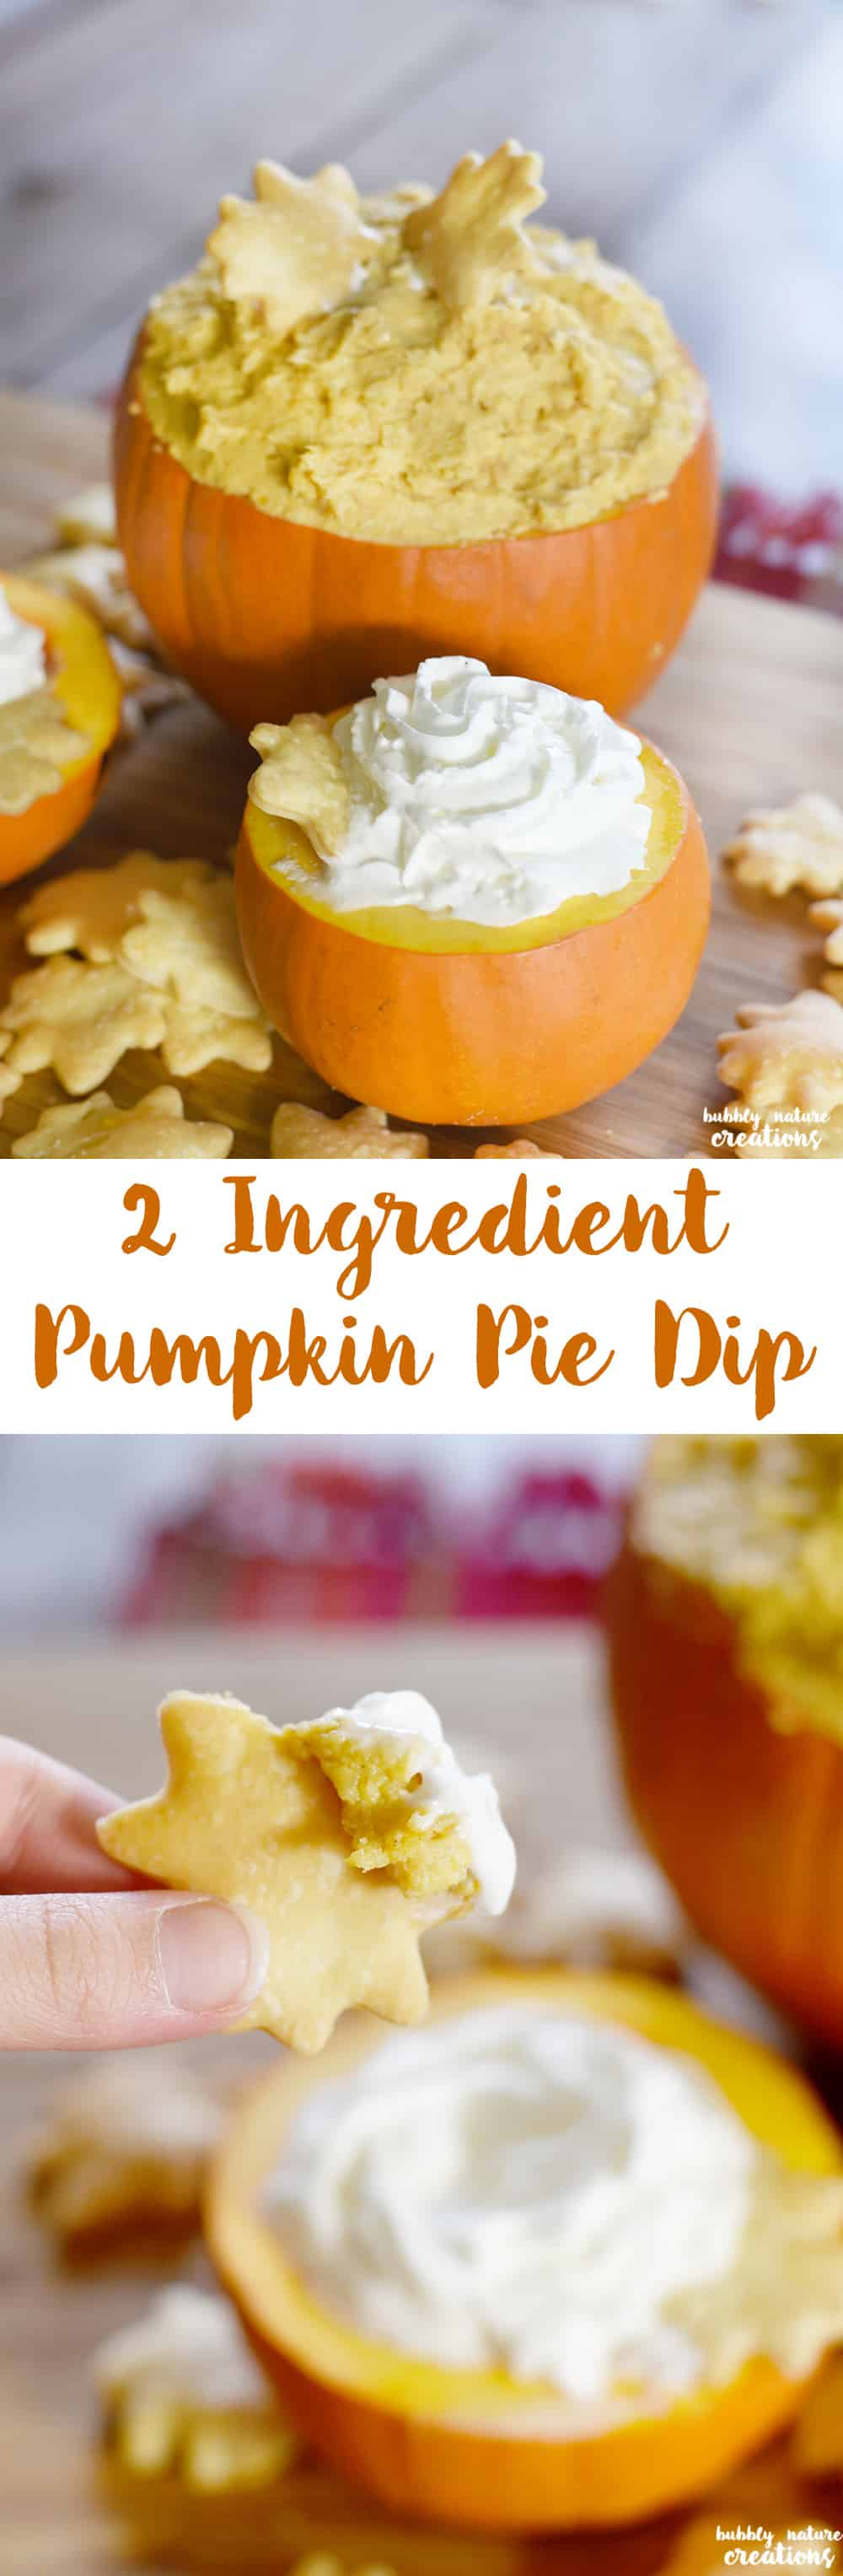 2 Ingredient Pumpkin Pie Dip! So easy and delicious for Thanksgiving or any Fall occasion.